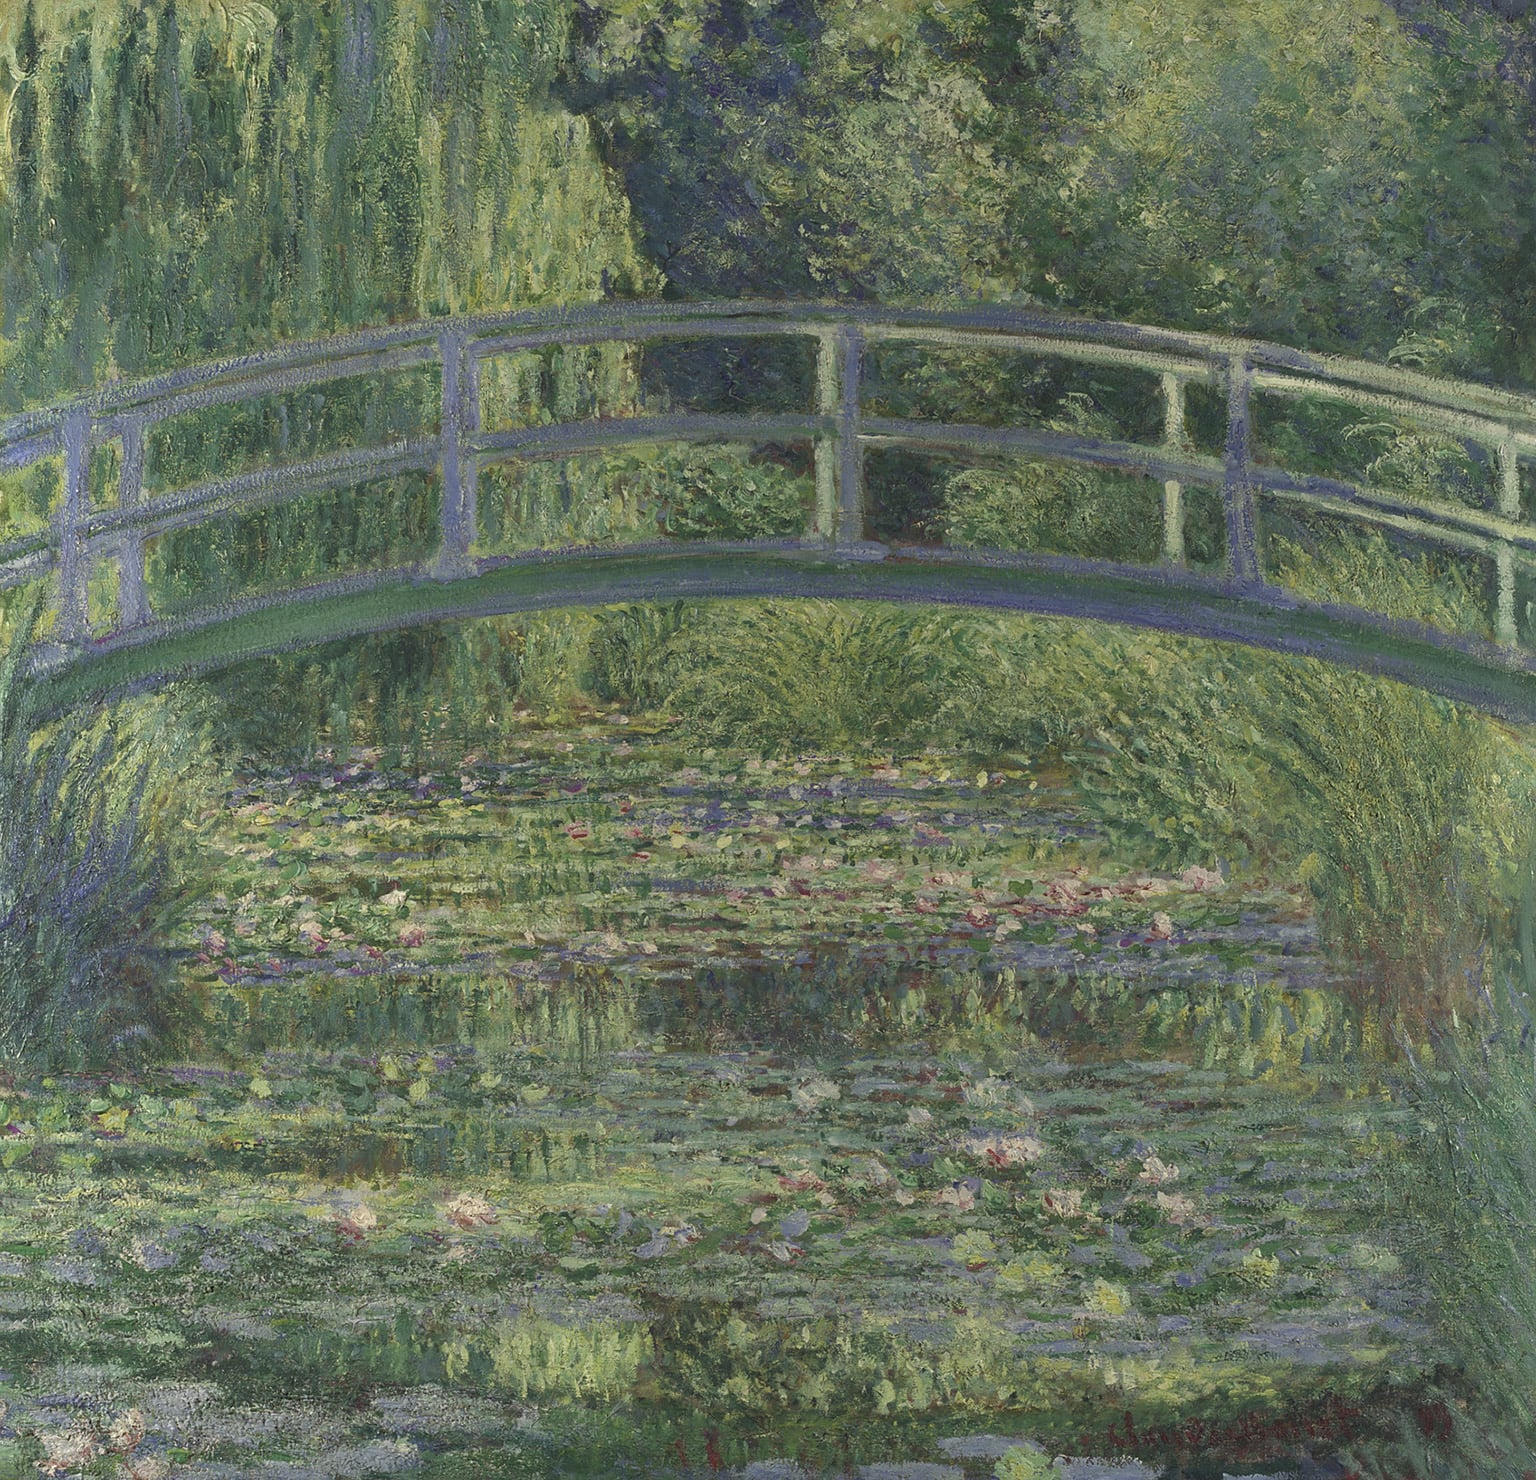 5. Claude-Oscar Monet, The Water-Lily Pond,1899. National Gallery, London - © National Gallery, London